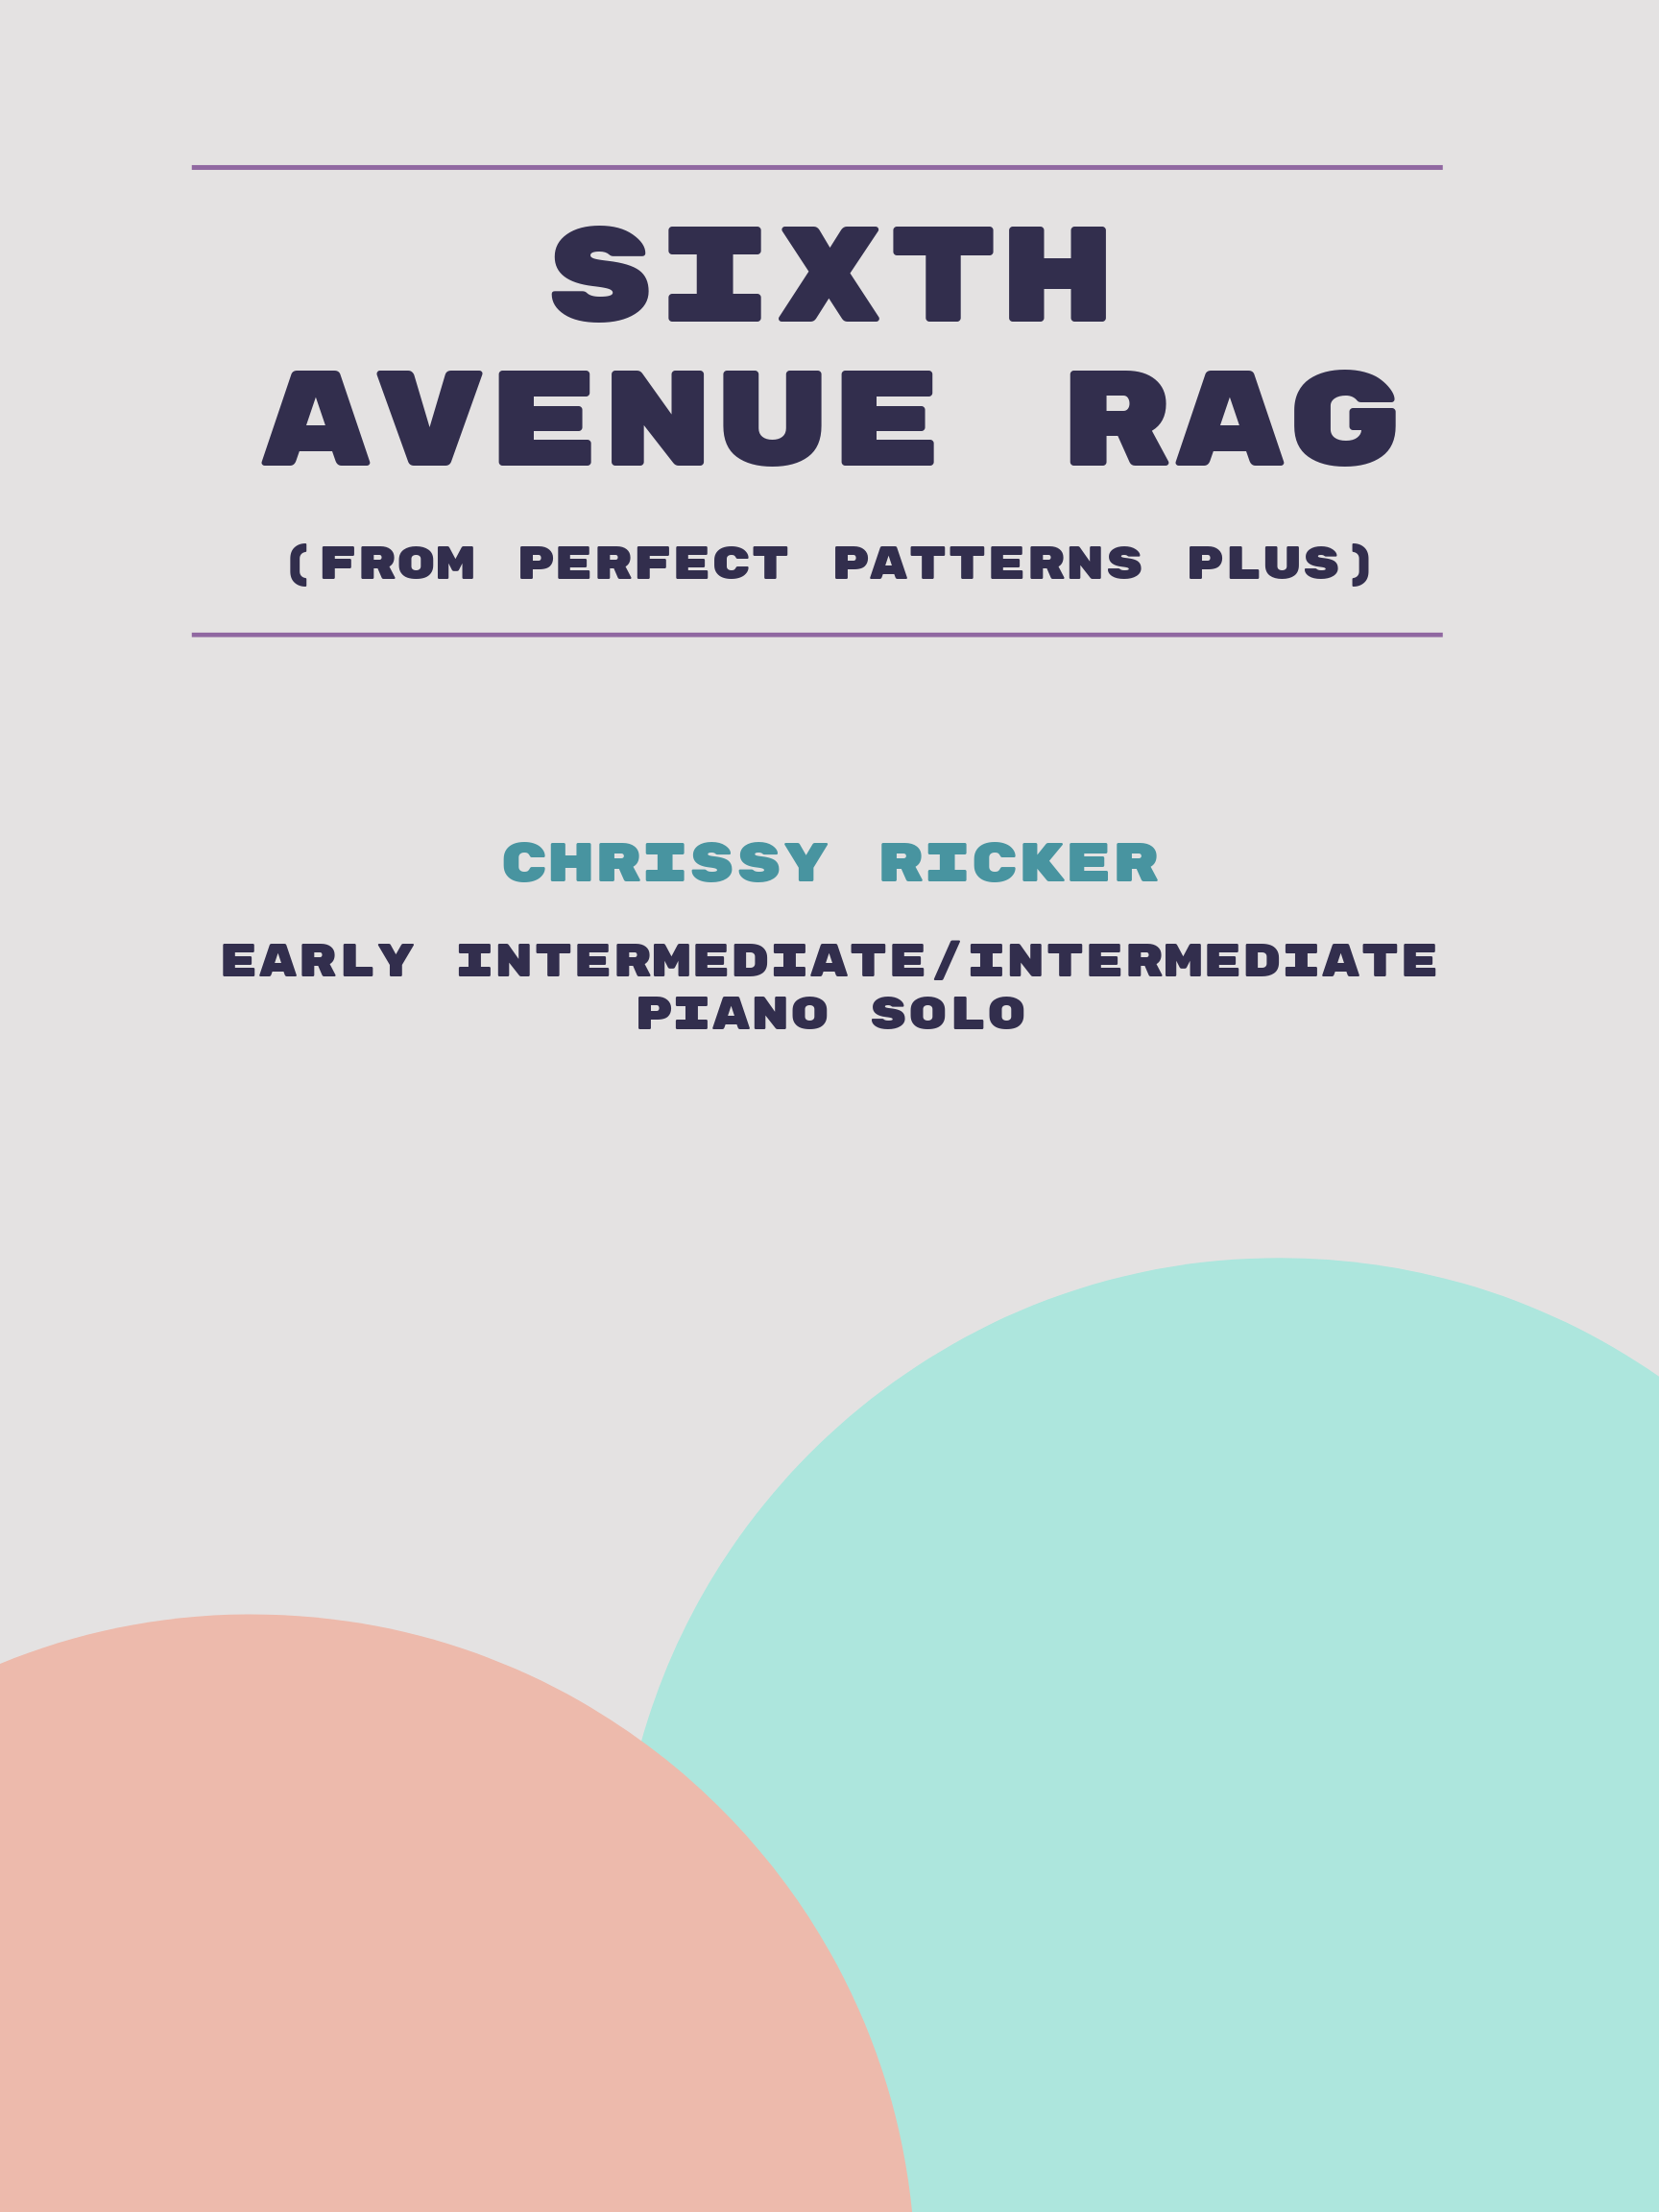 Sixth Avenue Rag by Chrissy Ricker